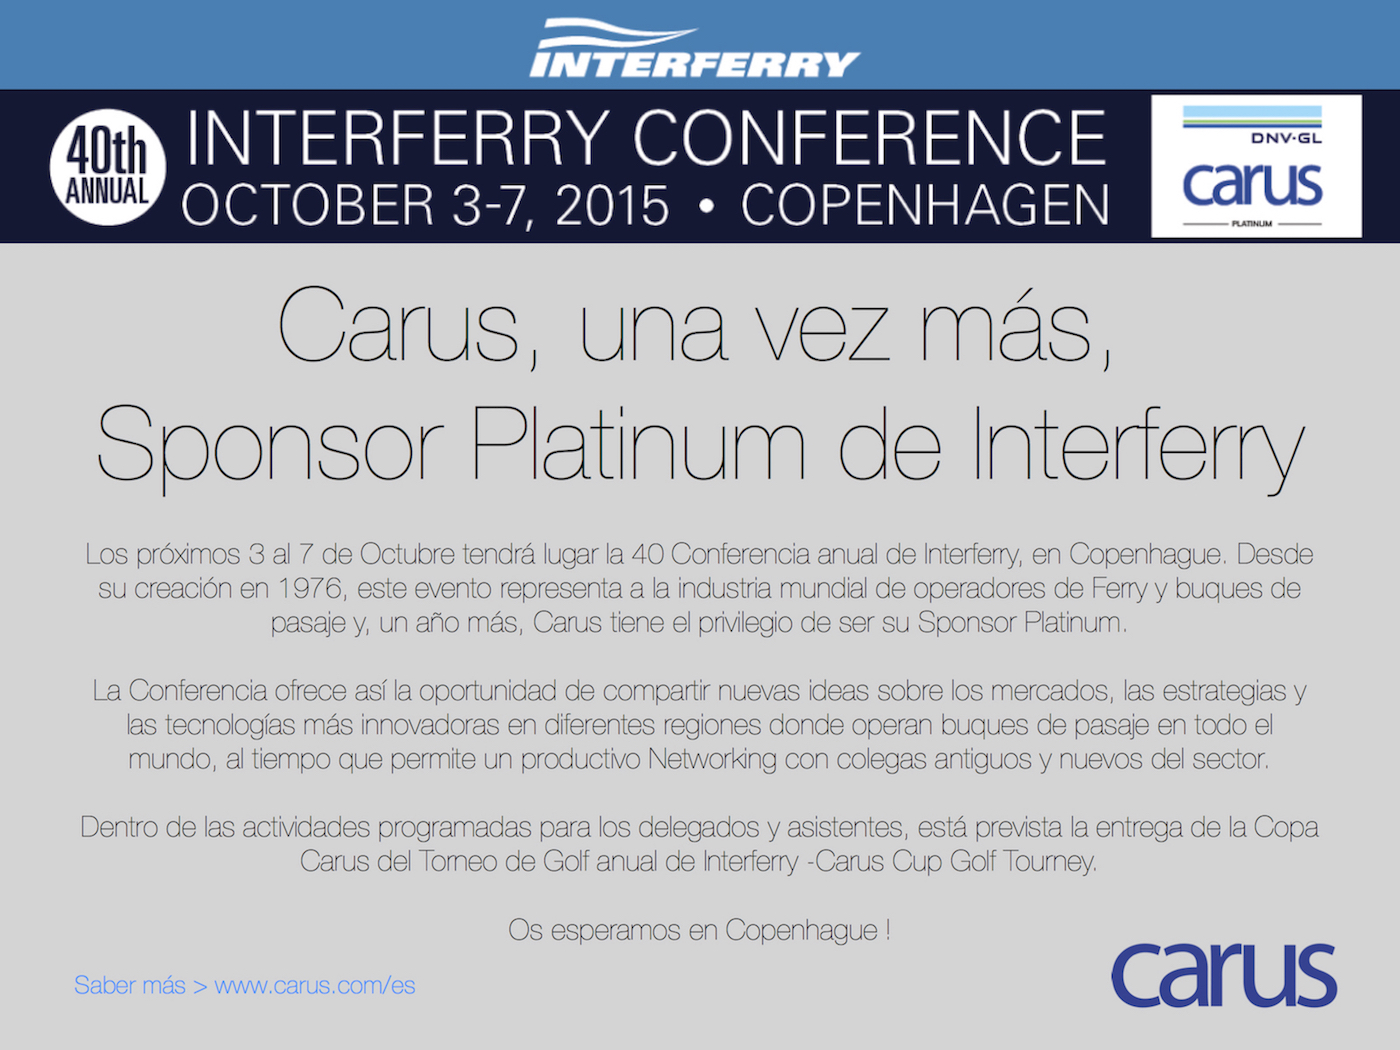 Carus_Interferry_NotaPrensa_220915